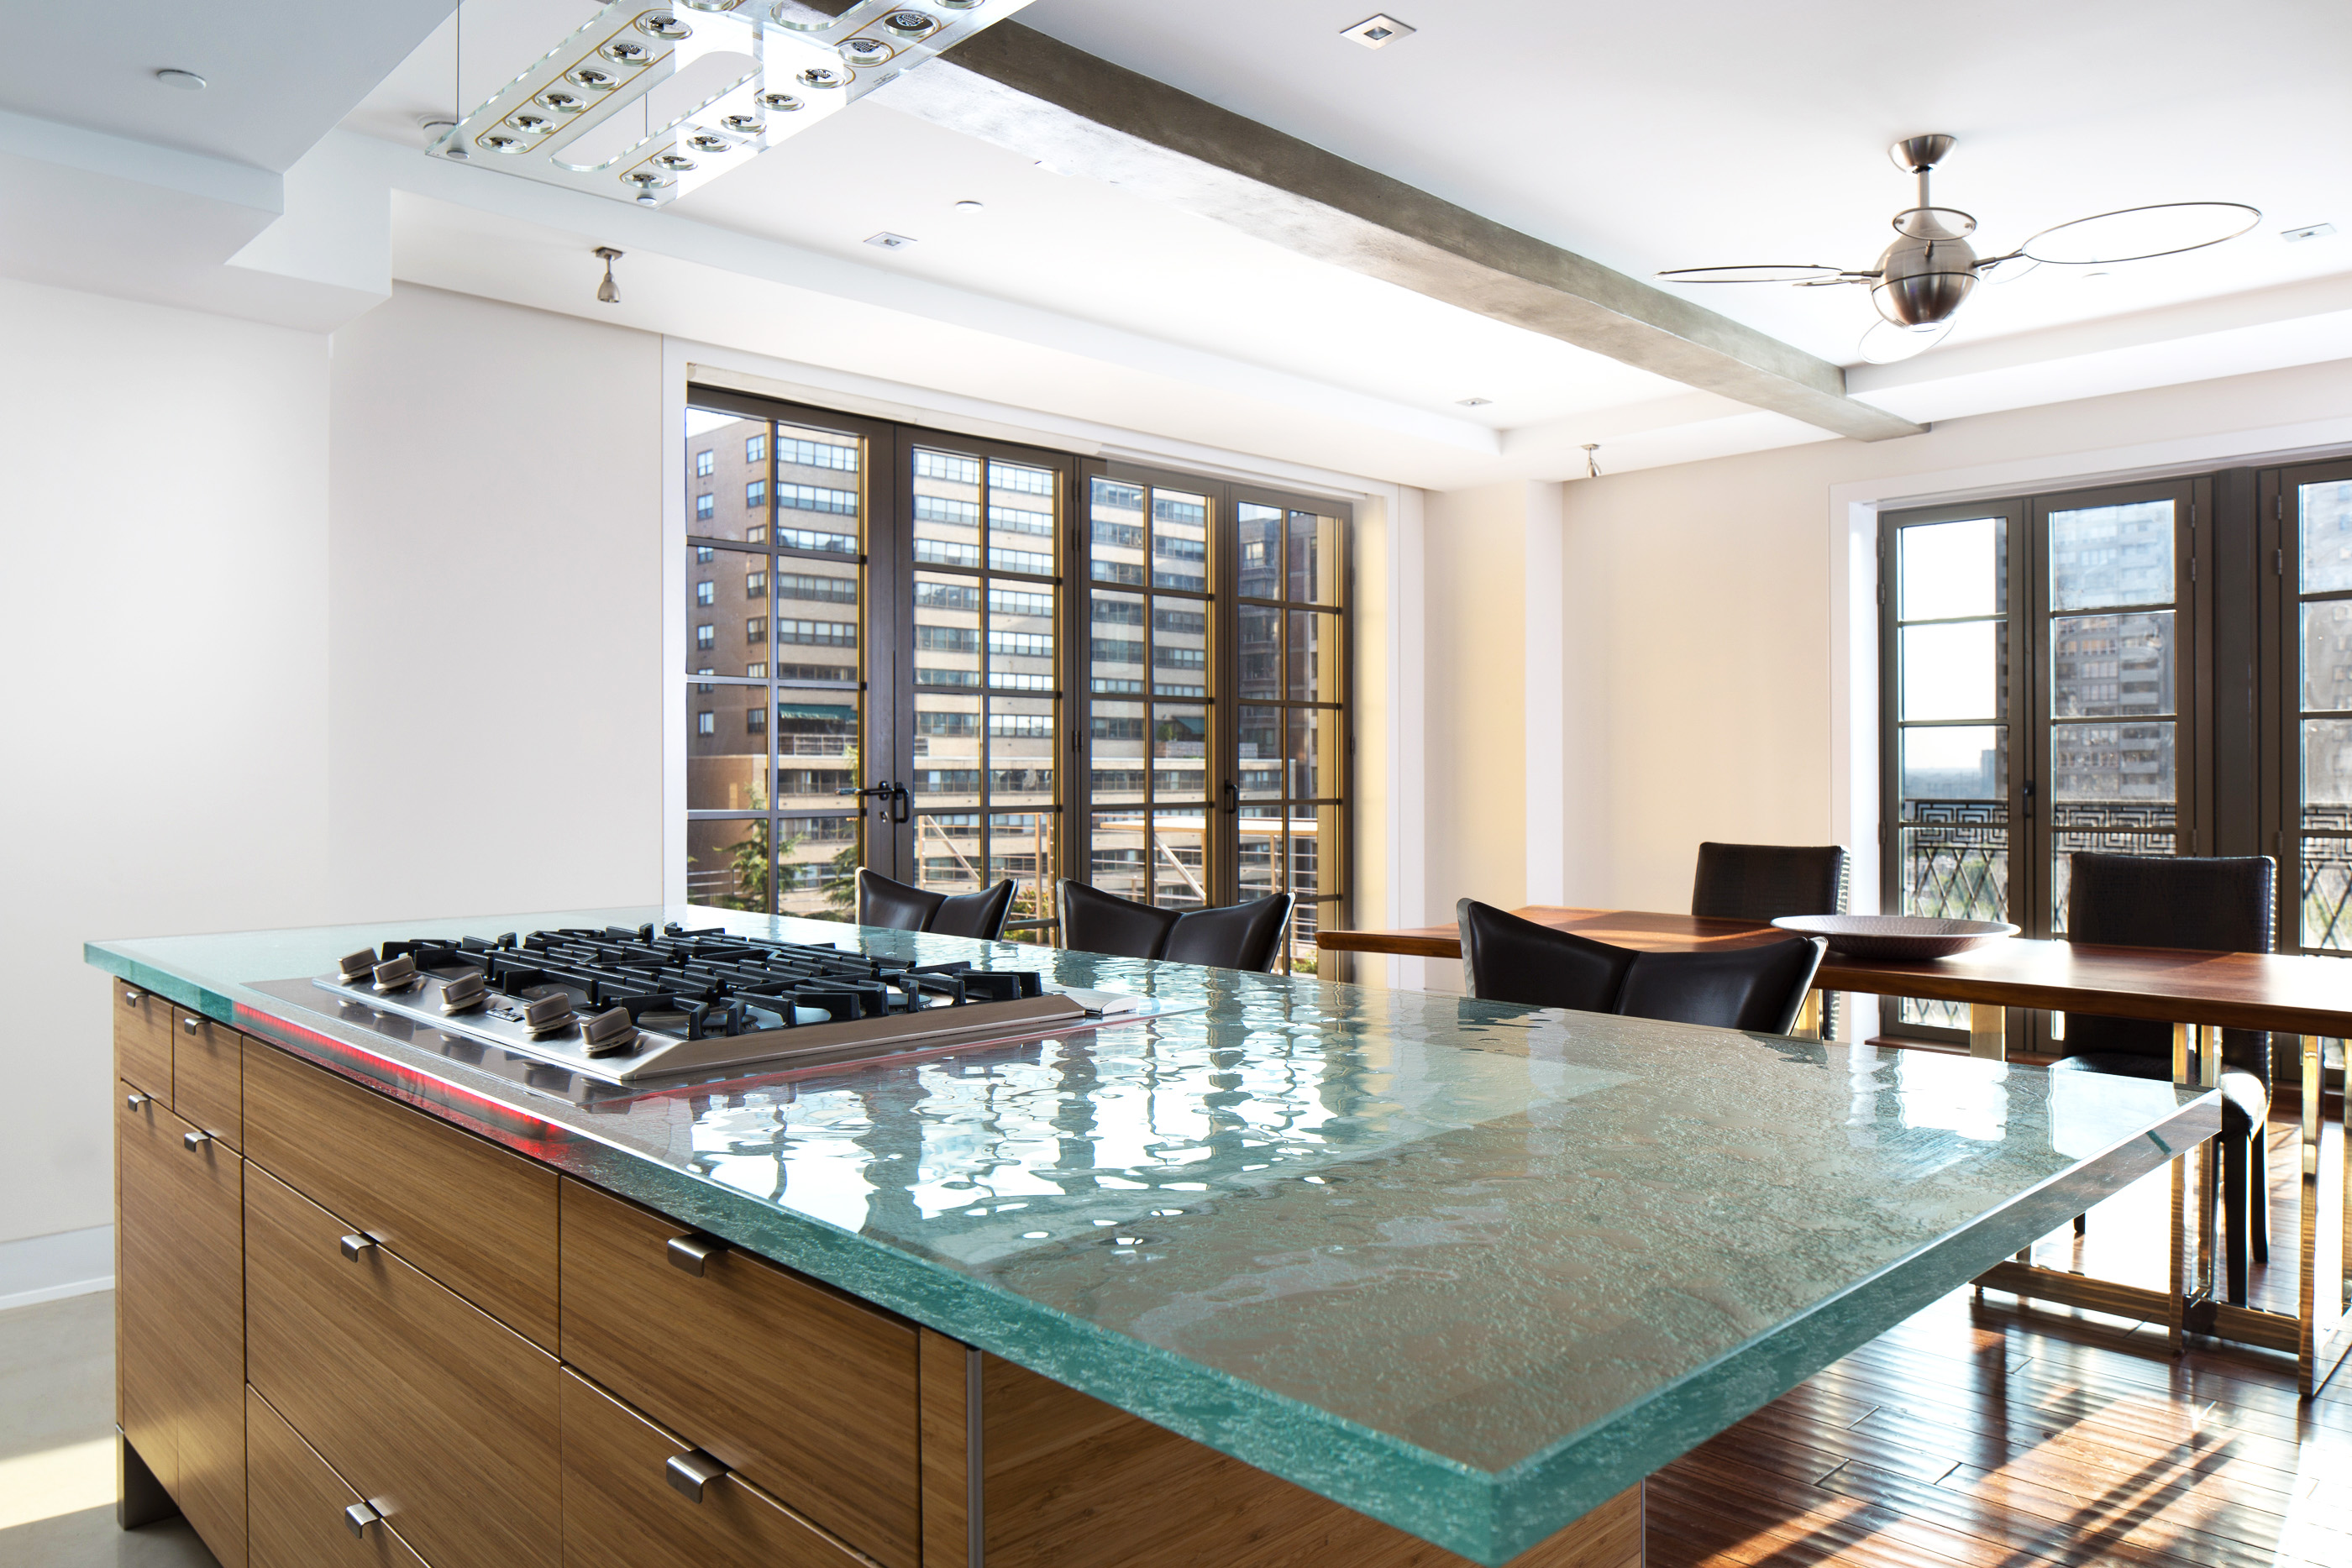 Thermoformed Glass Countertop By Thinkglass Inc Archello